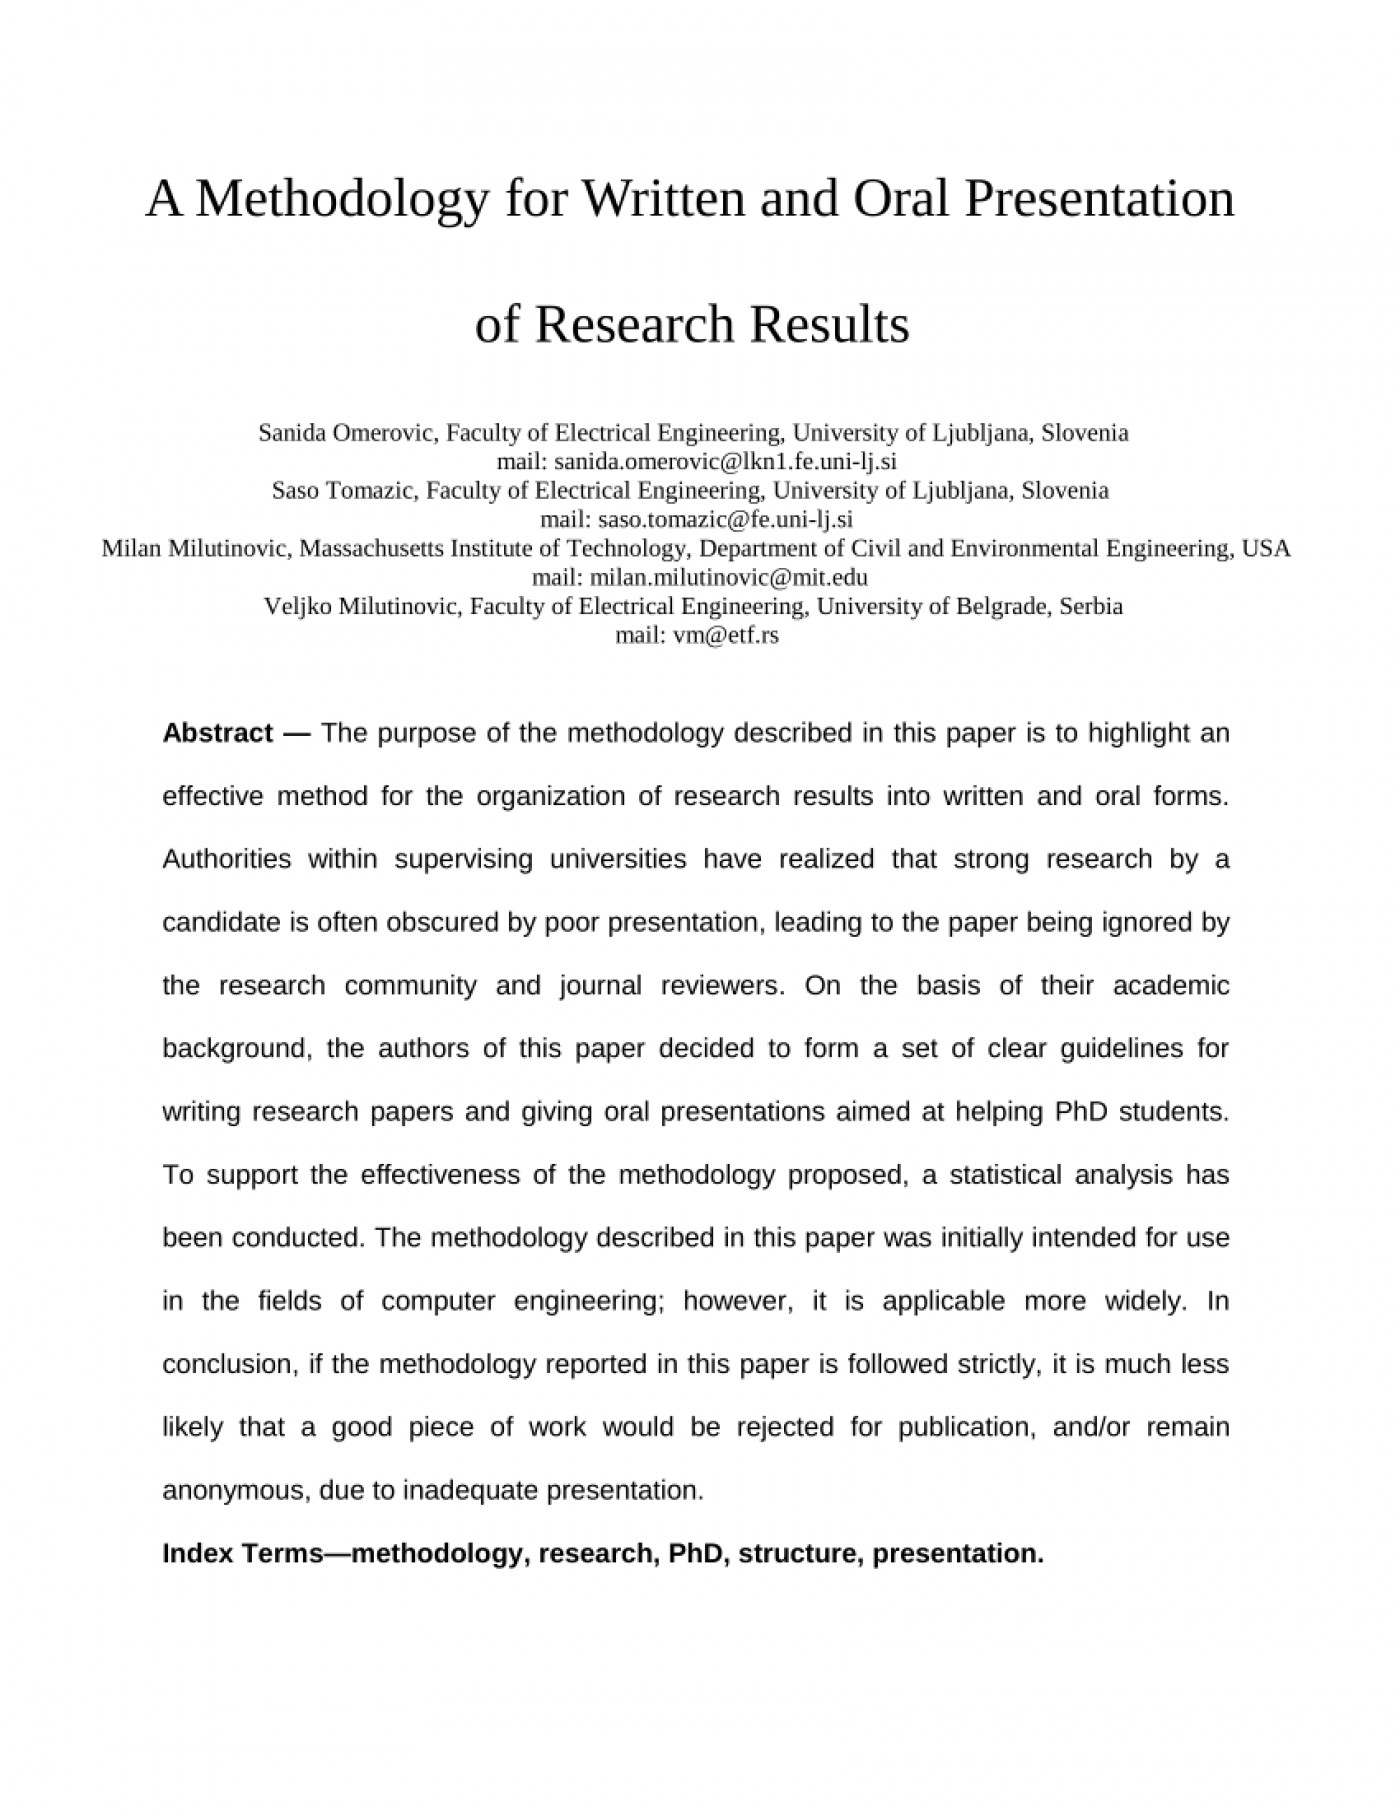 005 Research Paper Poorly Written Papers Stunning Badly Examples Of 1400